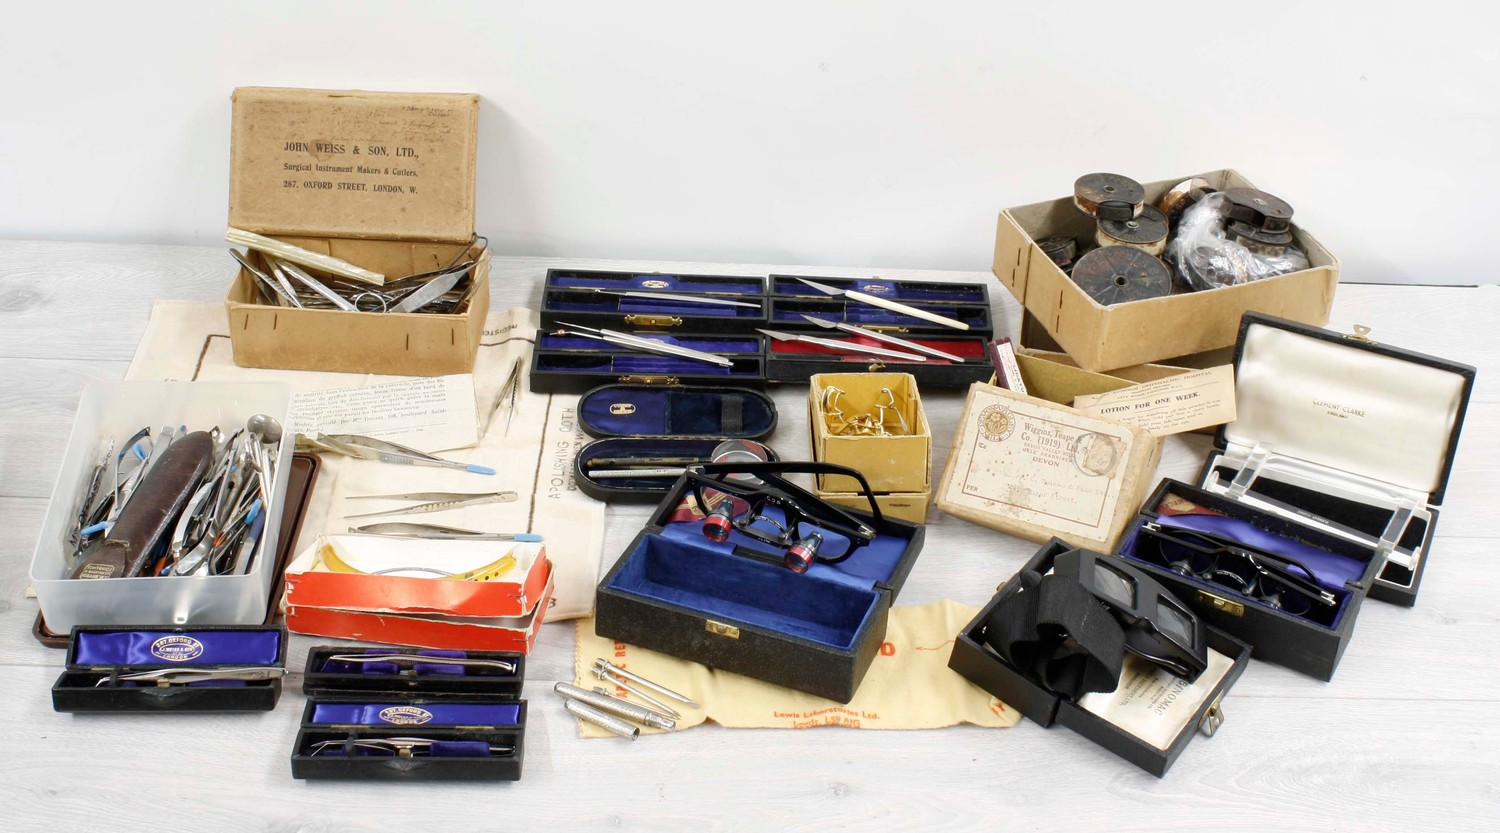 Collection of assorted opticians/medical instruments and apparatus including magnifying glasses,